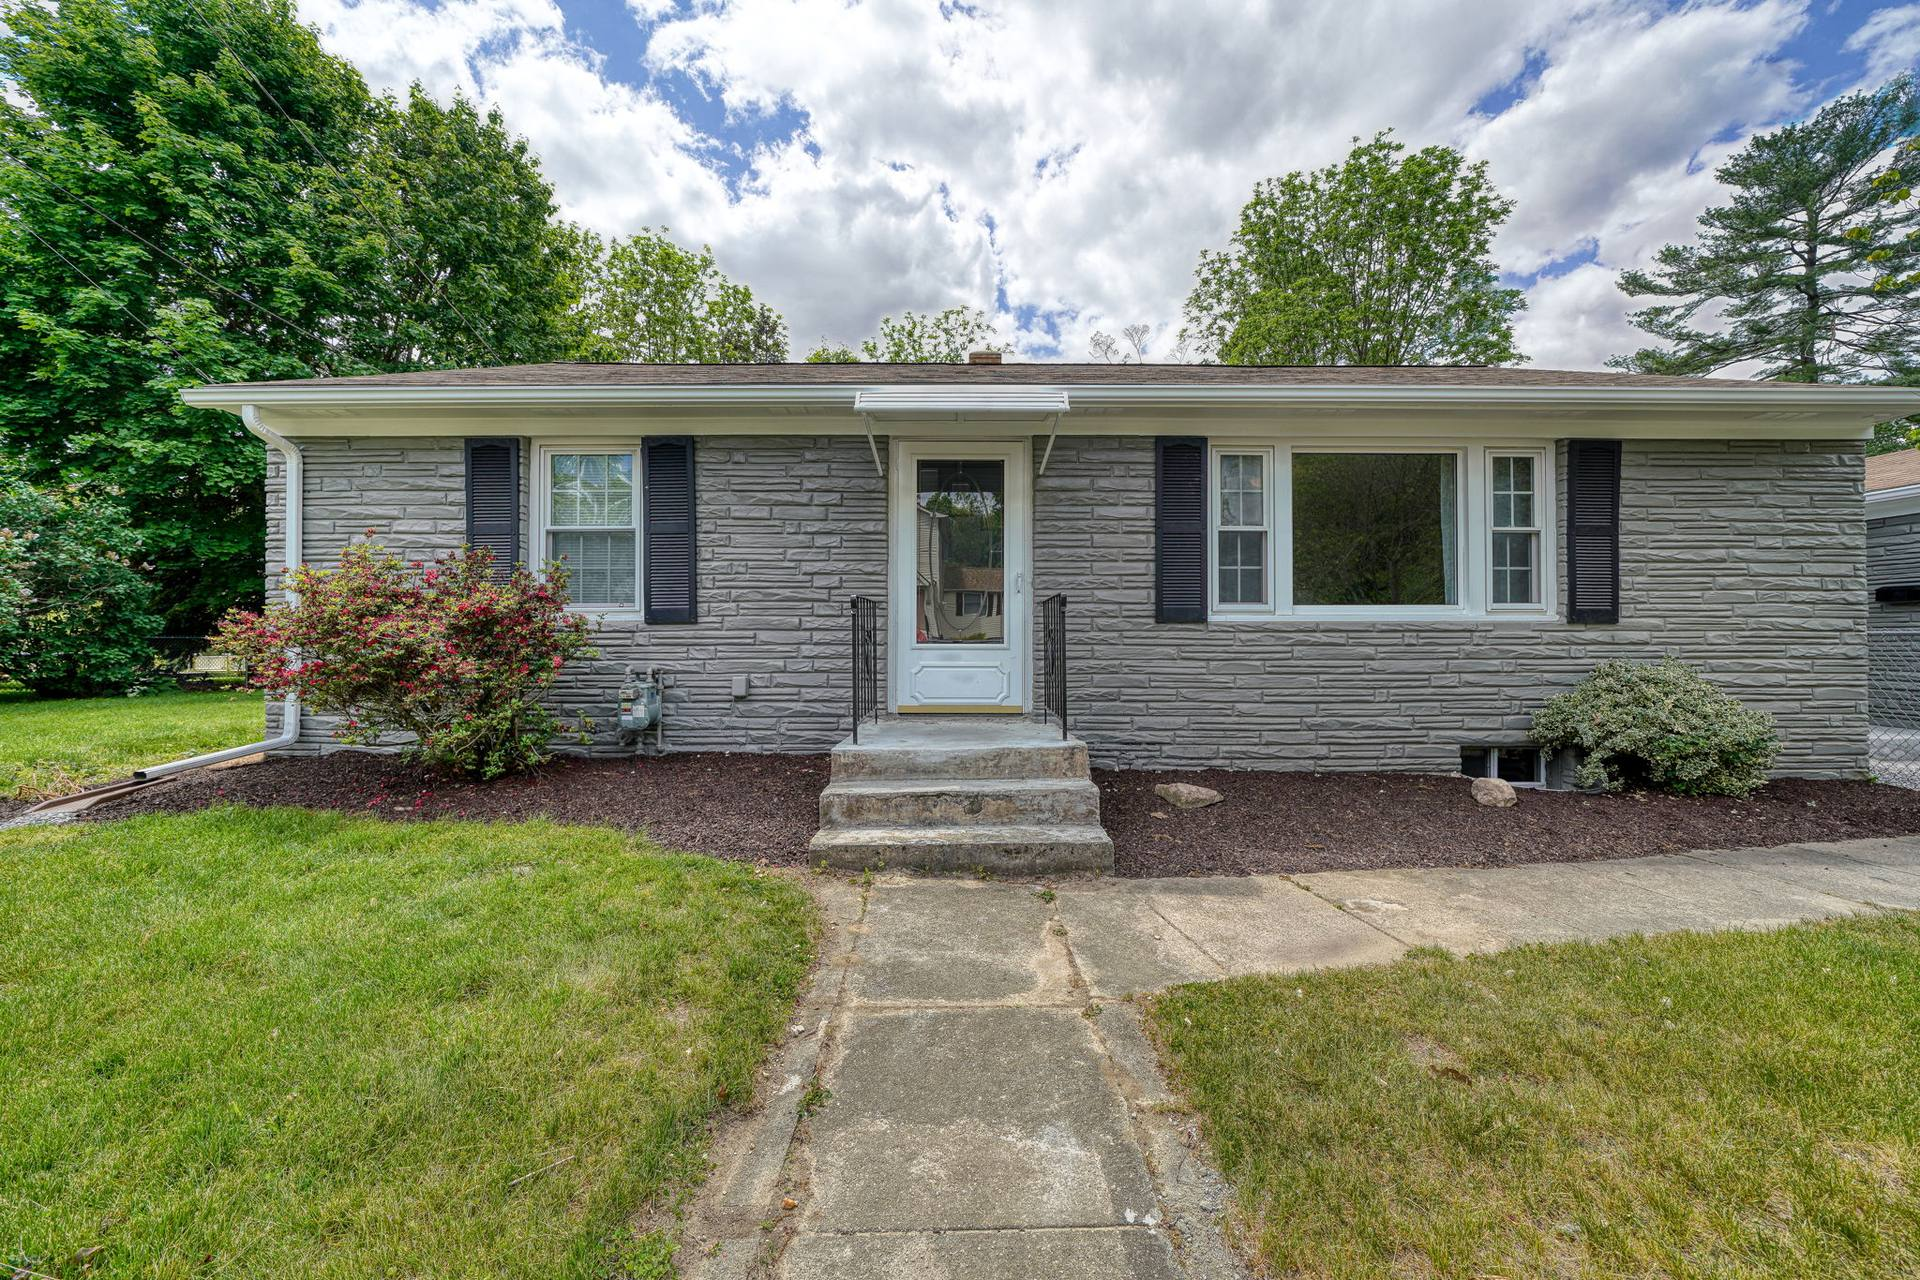 7 Pattison Ave, Dudley, MA 01571, US